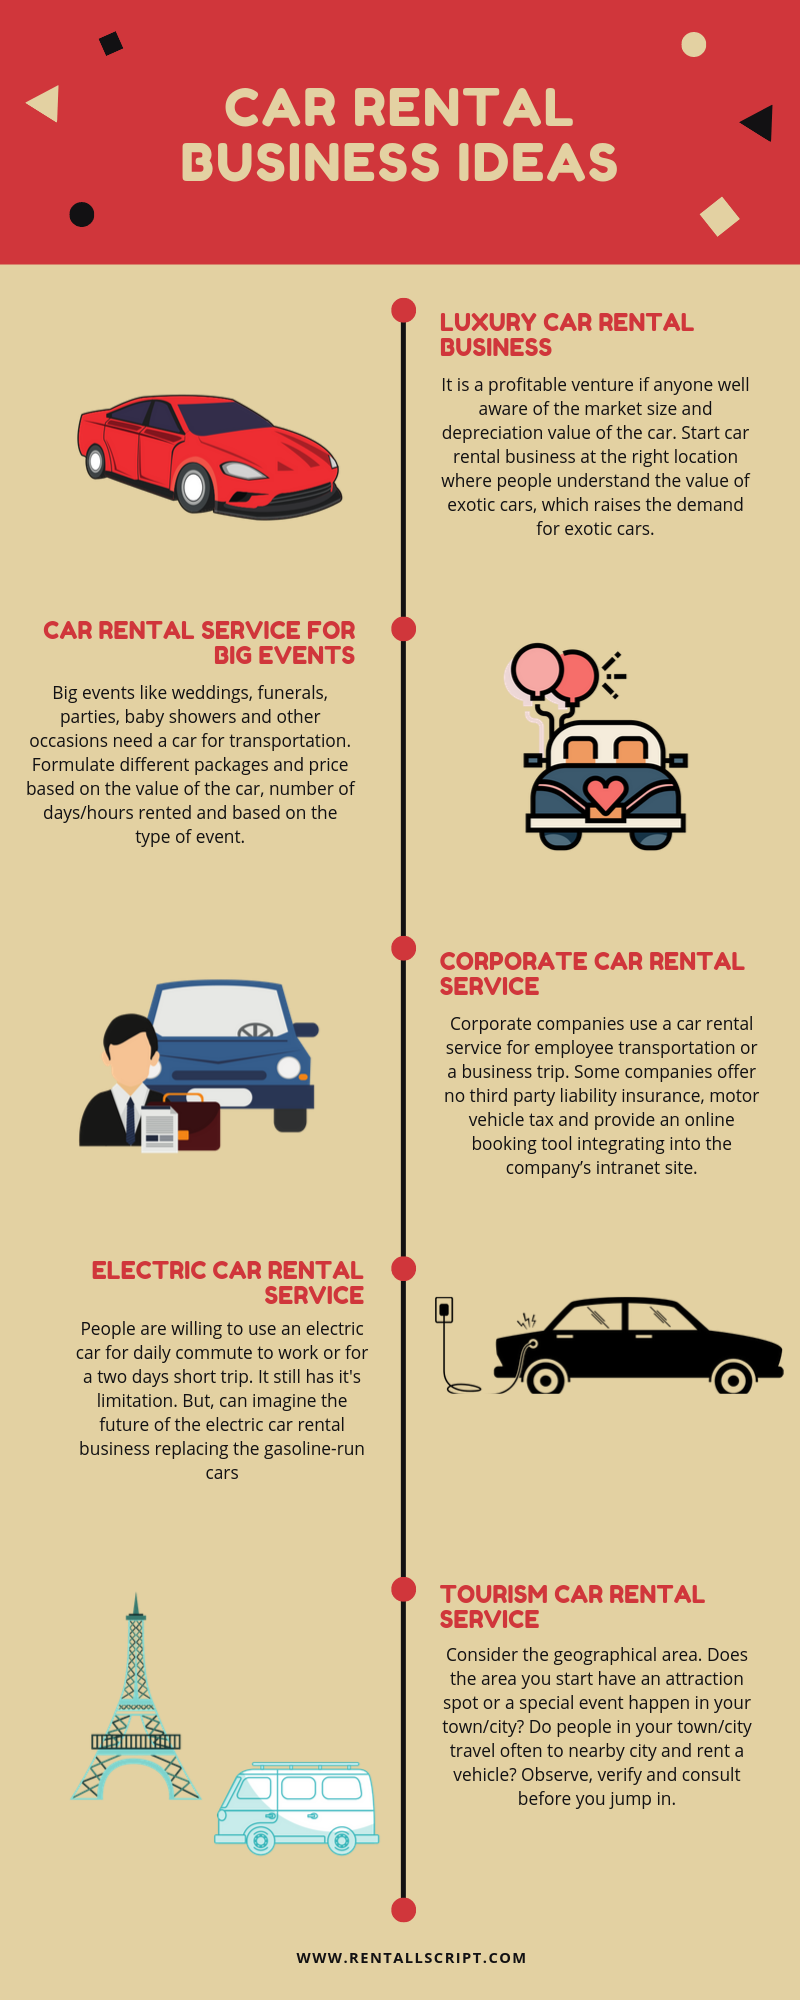 Most Promising Car Rental Business Ideas In 2019 Rentall In 2020